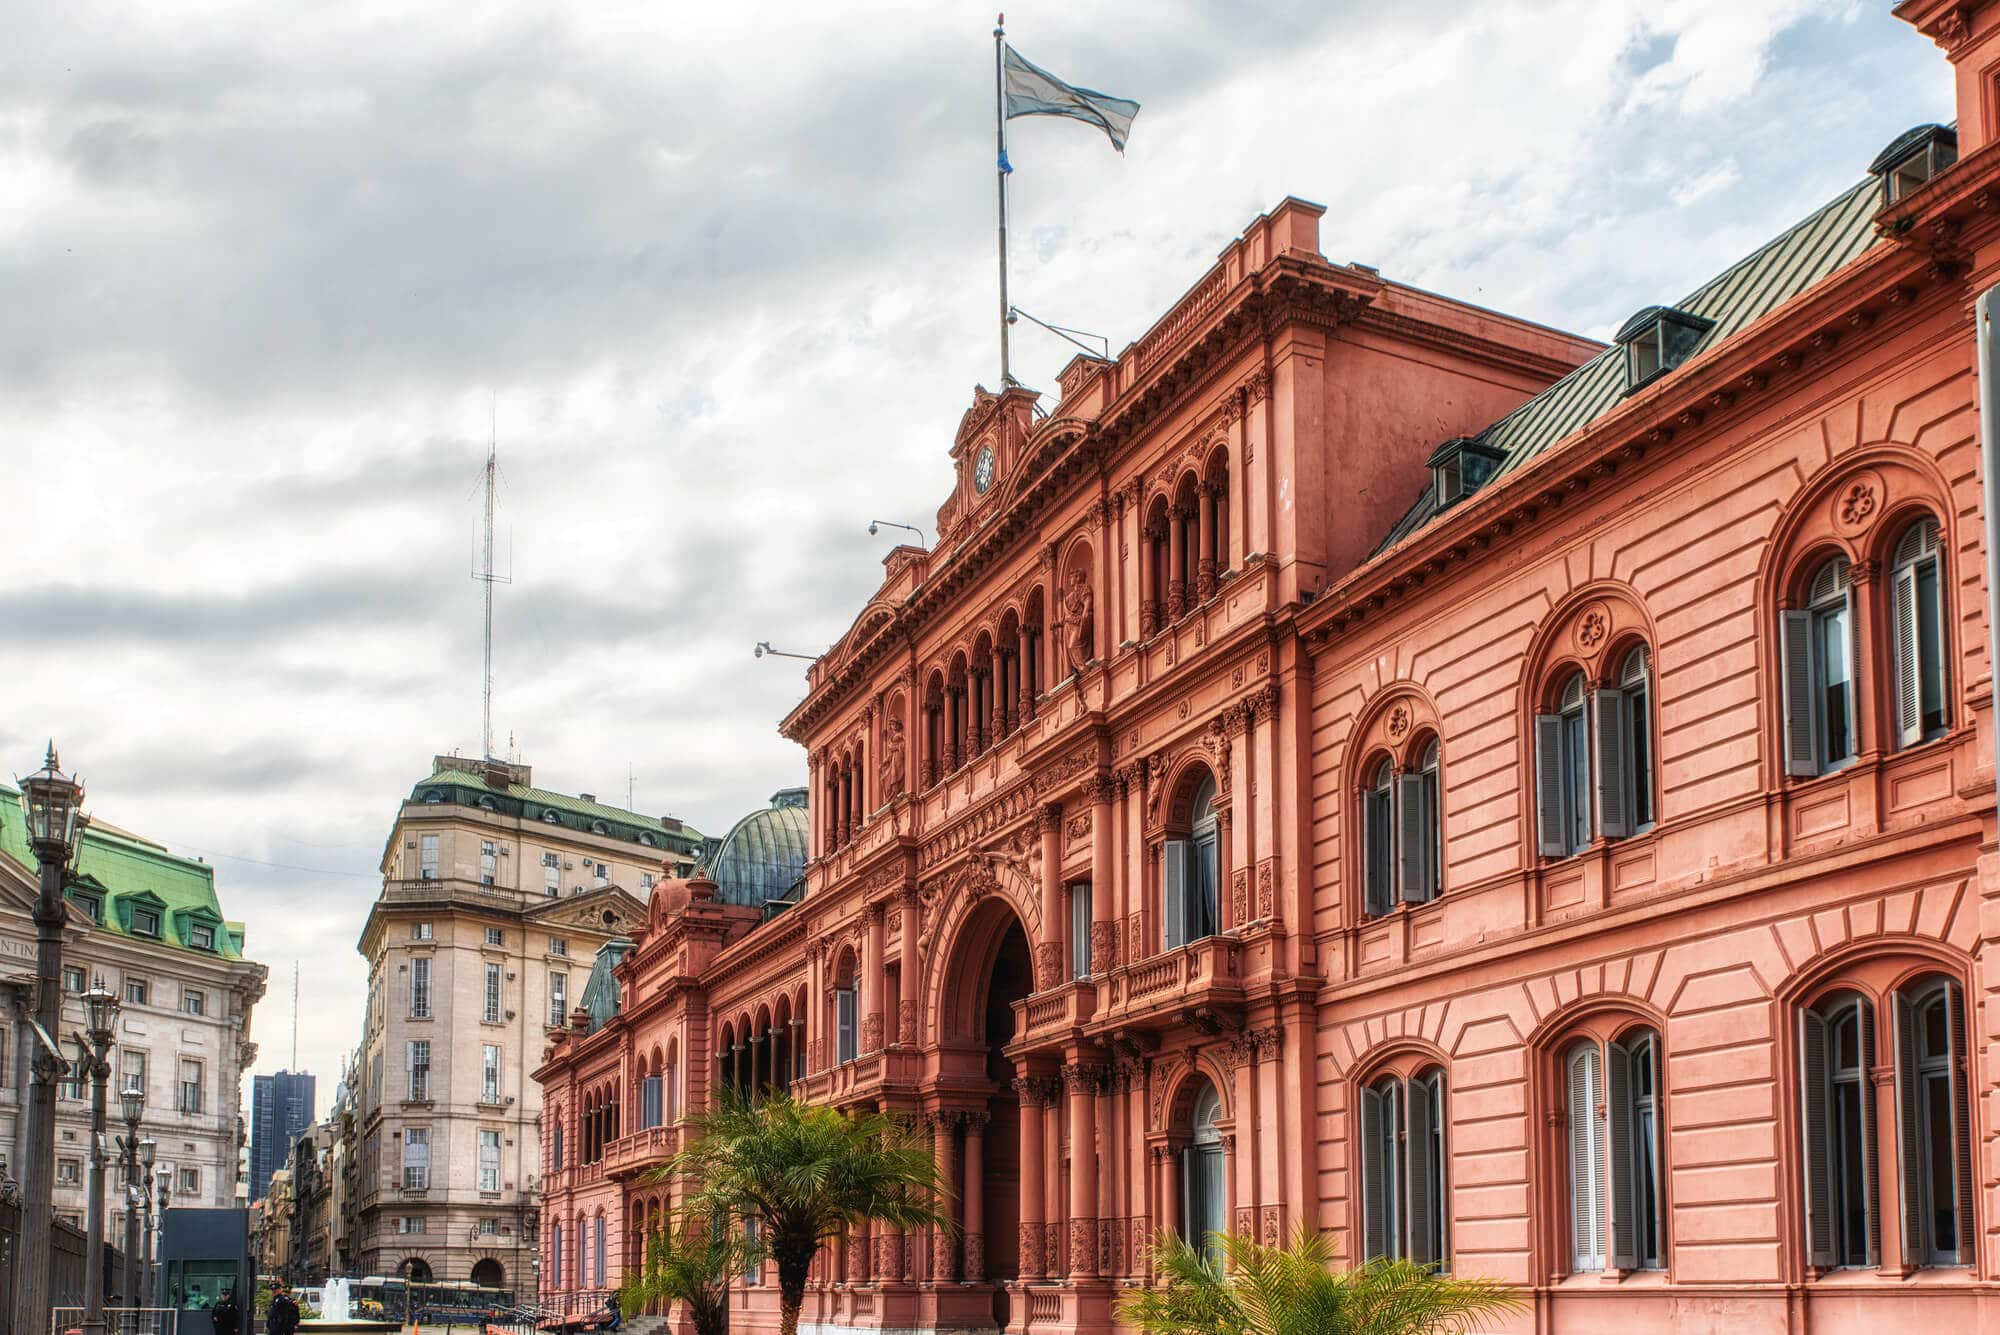 A pink government building with a blue and white flag flying overhead